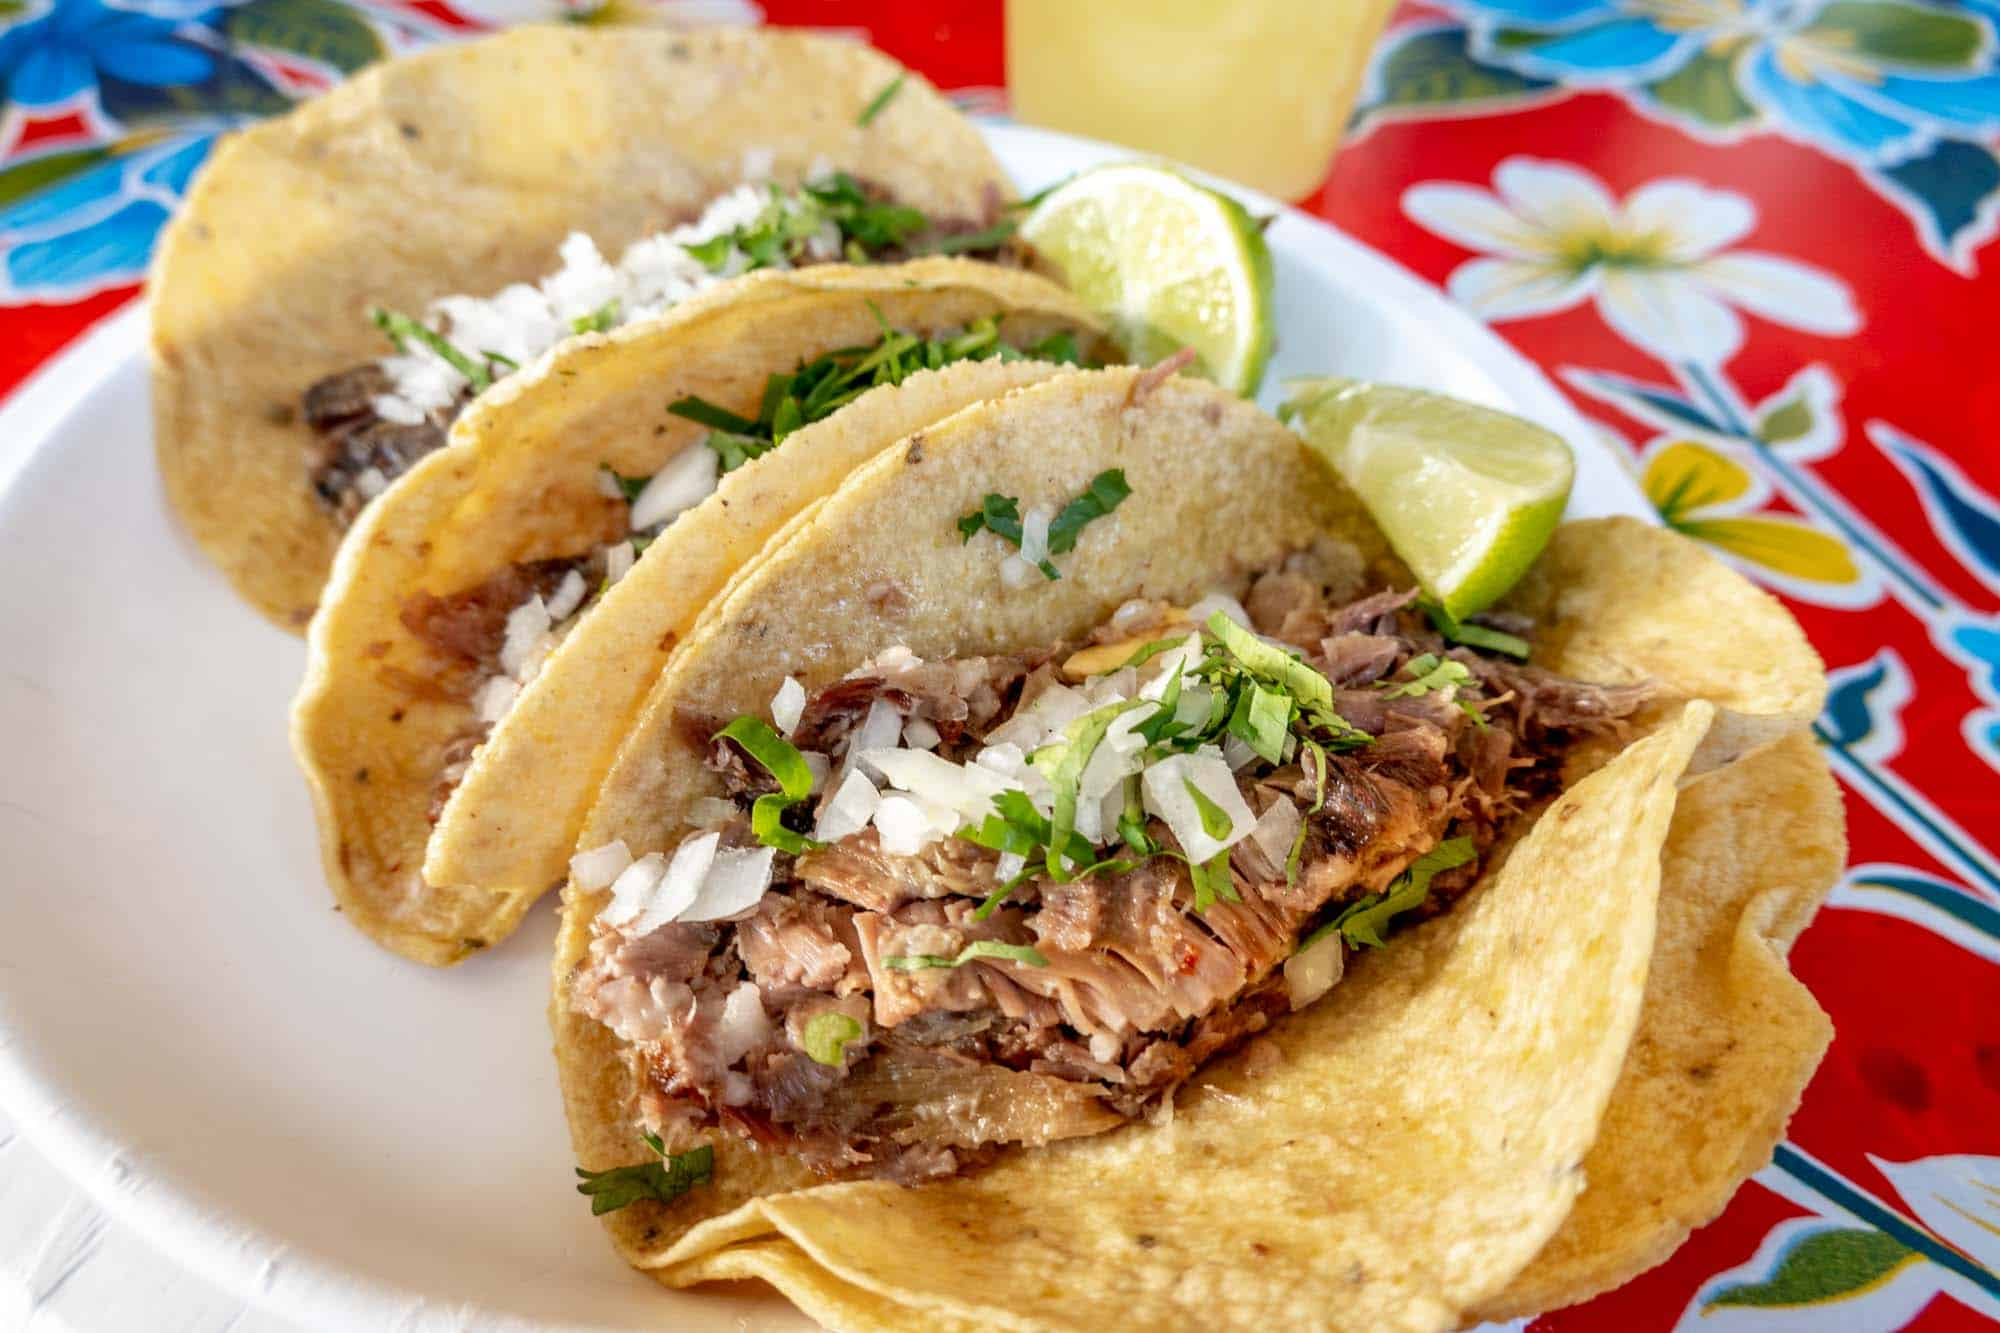 Meat tacos topped with onion and cilantro